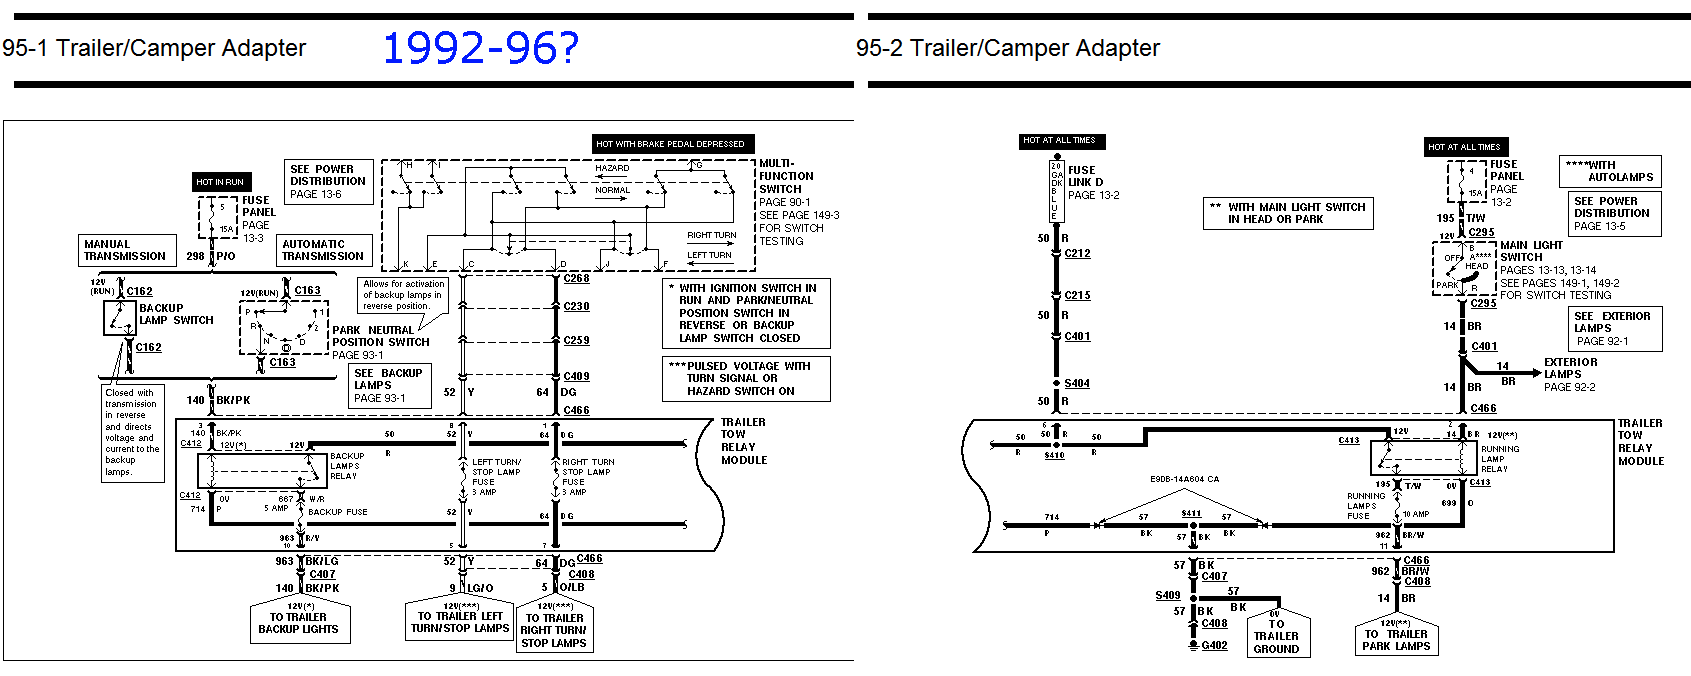 Trailer Tow Package And Trailer Wiring Questions Ford Truck 2007 Silverado Radio Wiring Diagram 2005 Silverado Wiring Diagram Lighting On Click Here For Larger